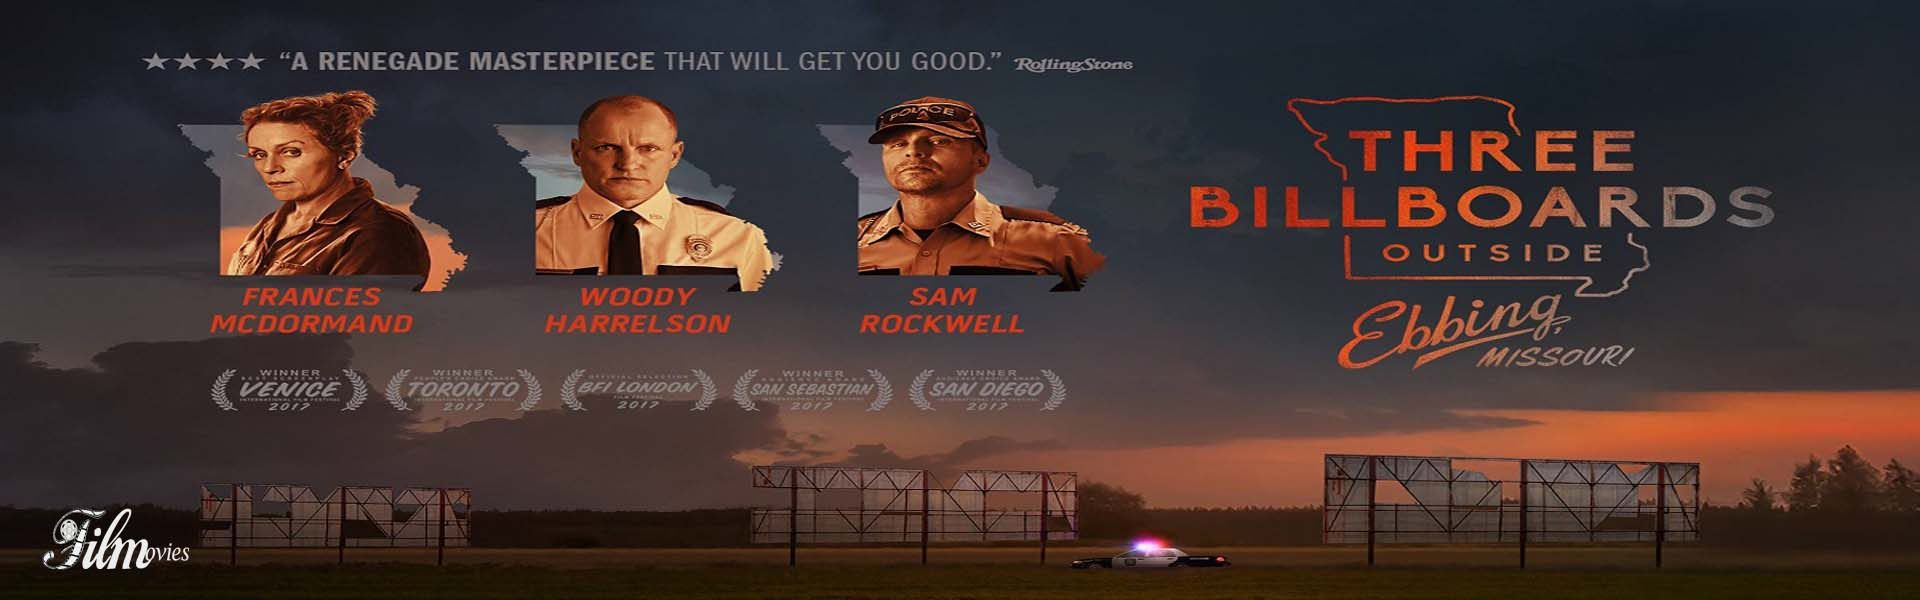 banner three billboards outside ebbing missouri